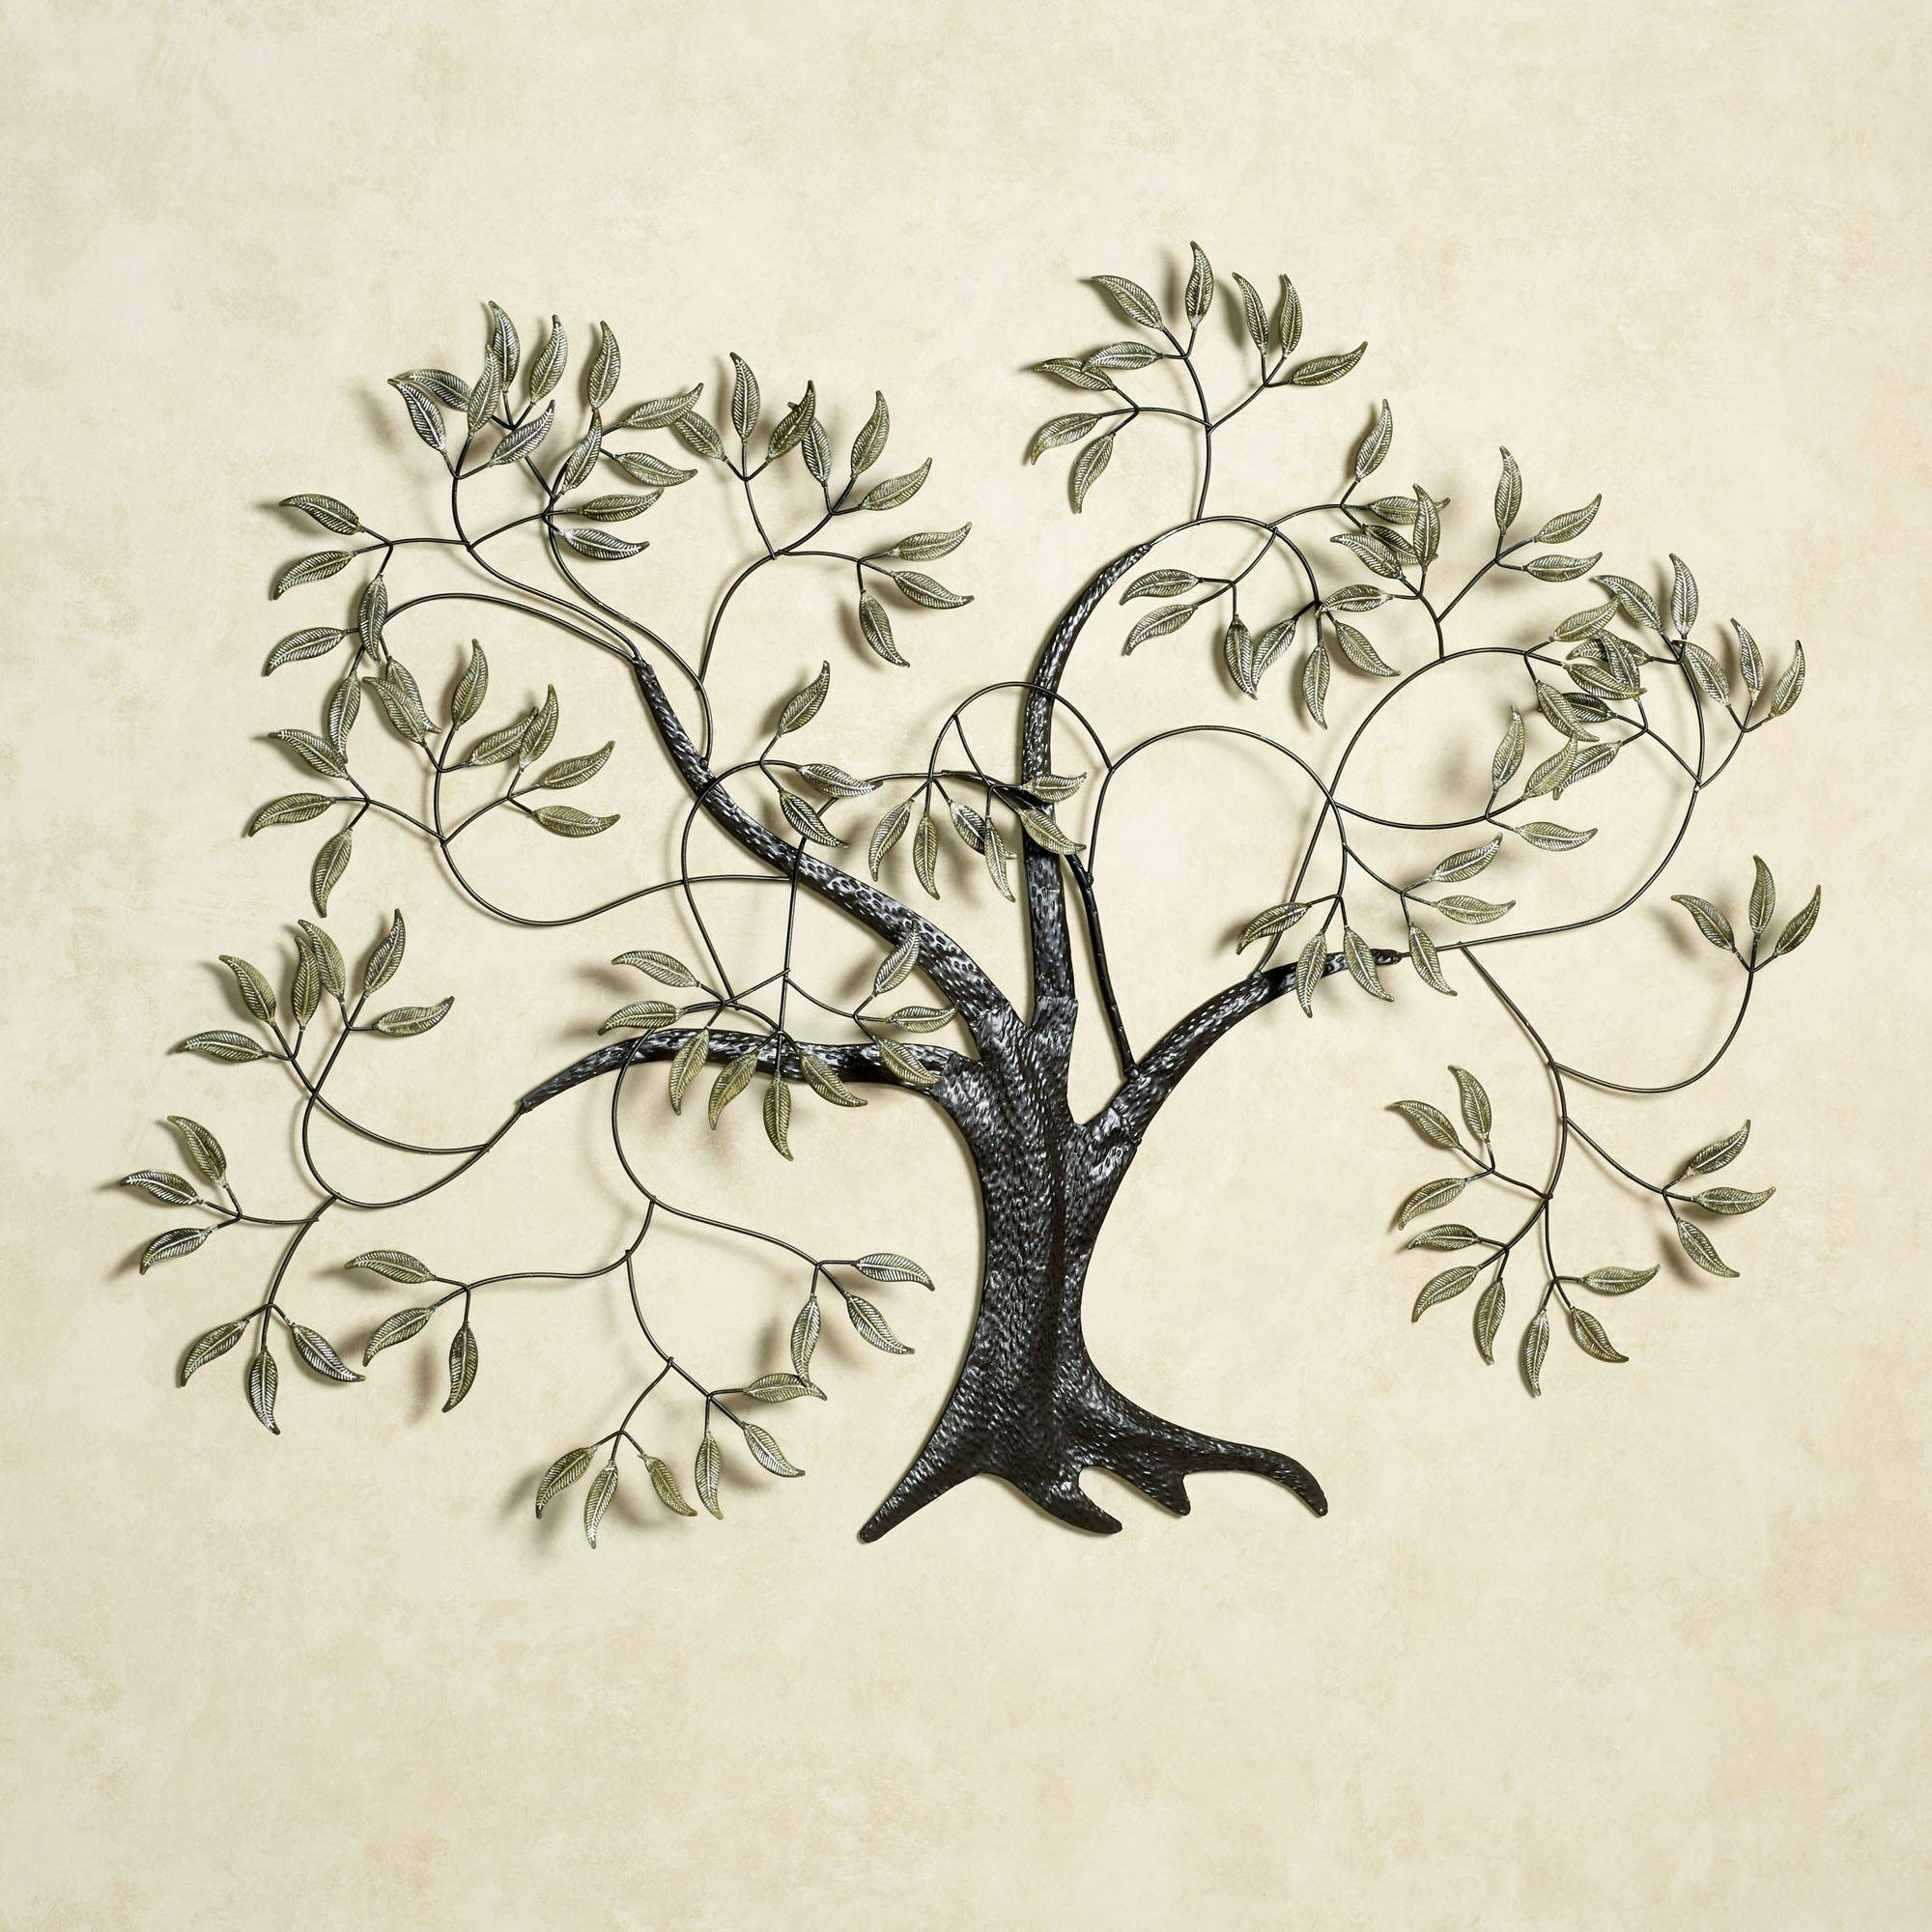 Wall Art, Metal Wall Art, Wooden Wall Art | Touch Of Class Pertaining To Most Recent Metal Wall Art Trees And Branches (View 17 of 18)